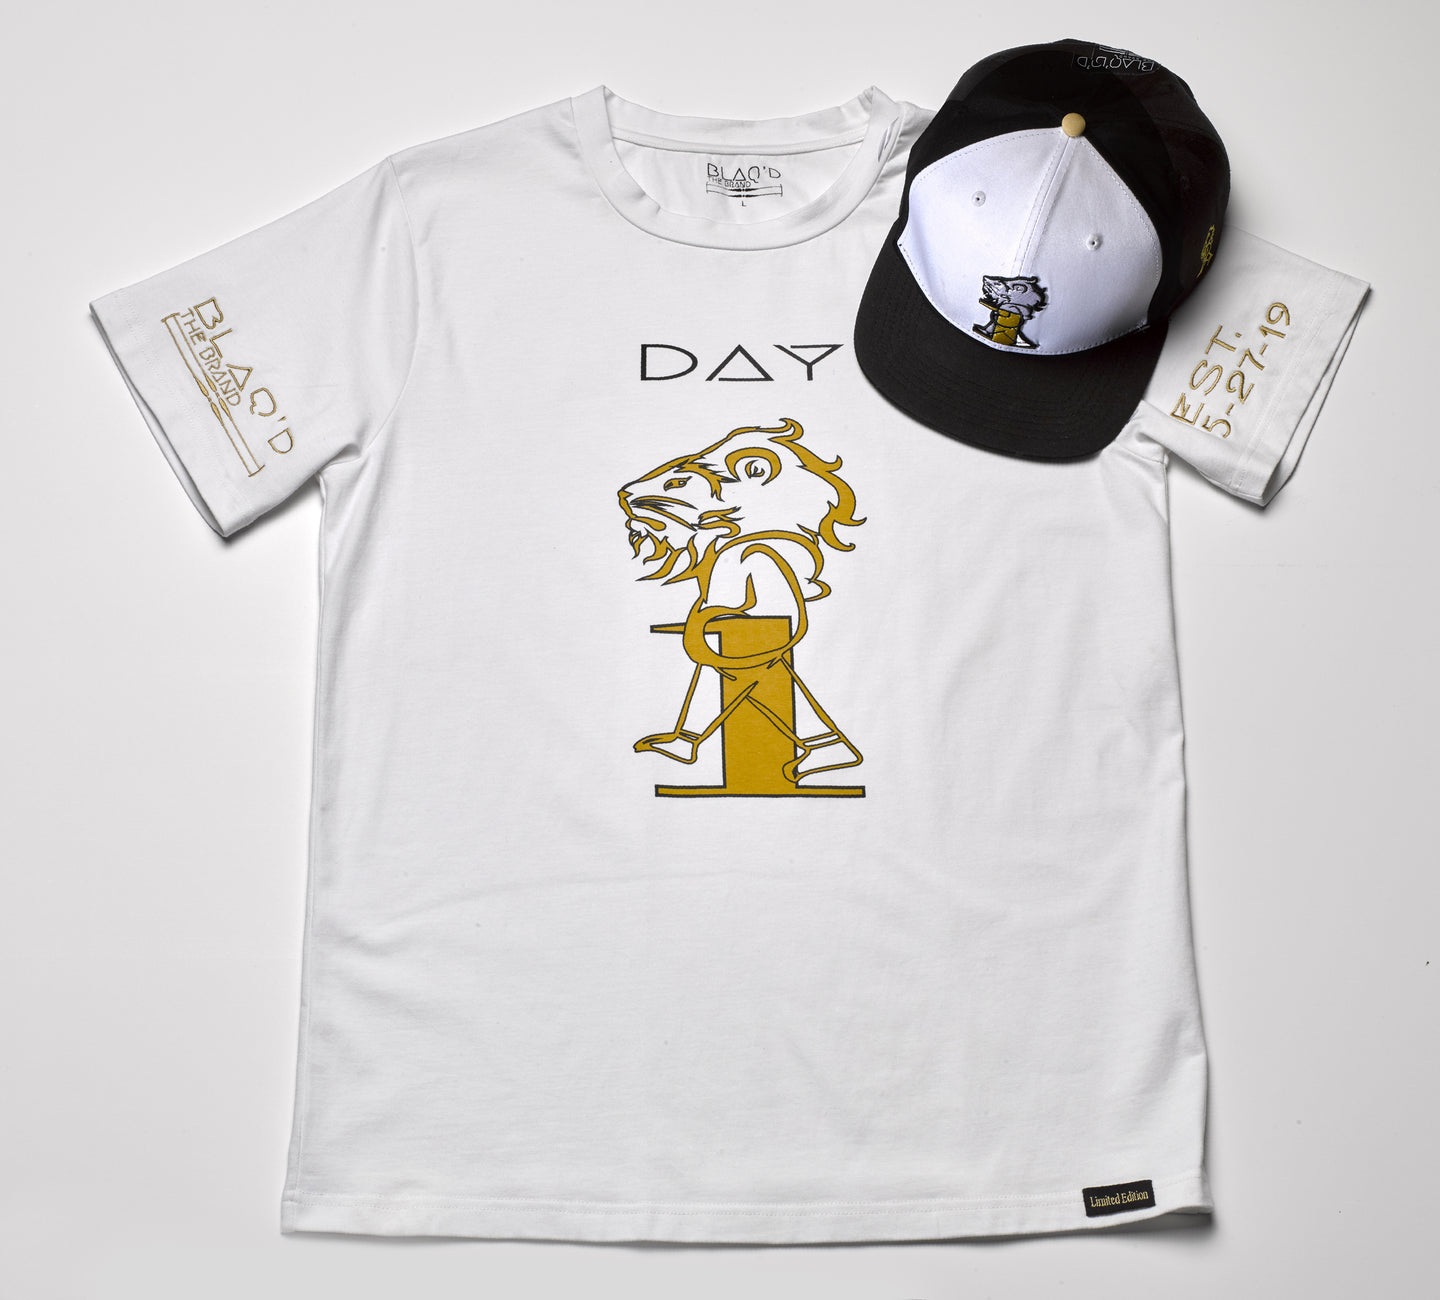 DAY 1 Limited Edition Launch Apparel